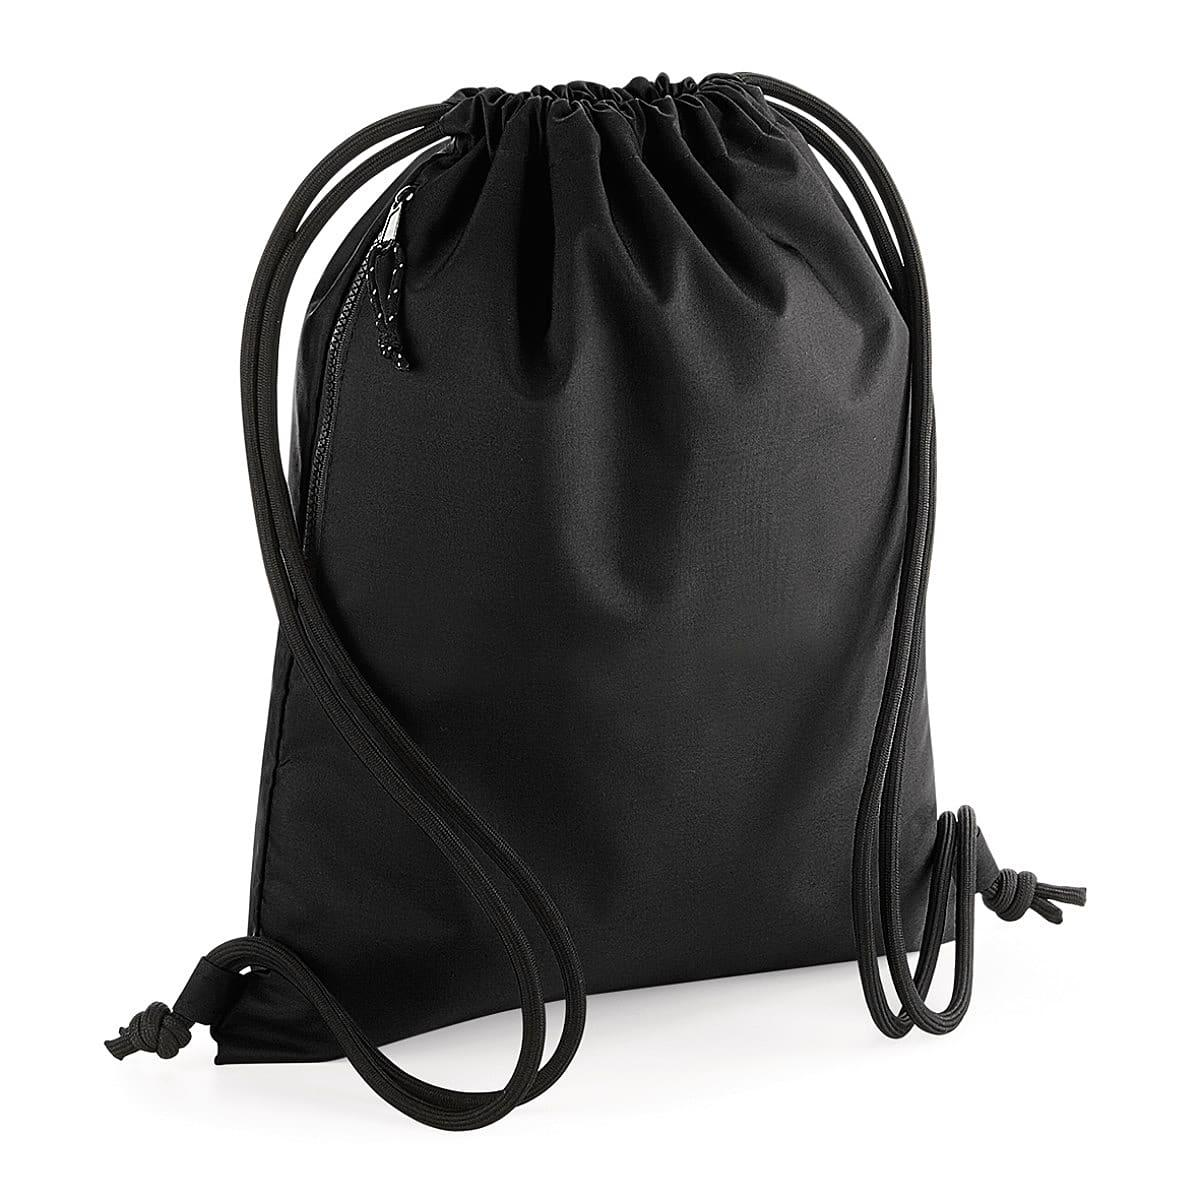 Bagbase Recycled Gymsac in Black (Product Code: BG281)